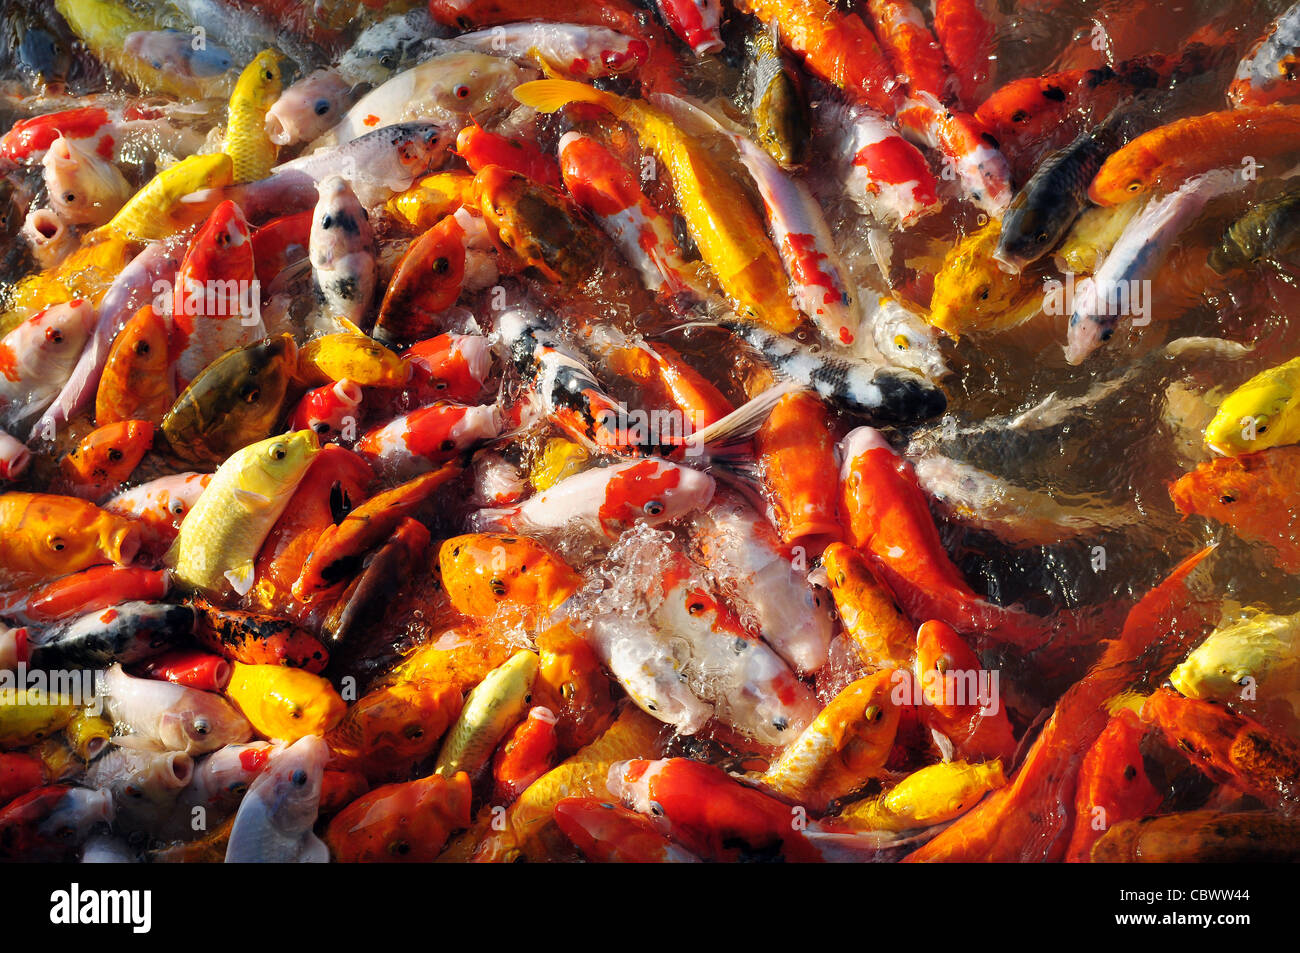 Looking At Koi Fish Stock Photos & Looking At Koi Fish Stock Images ...